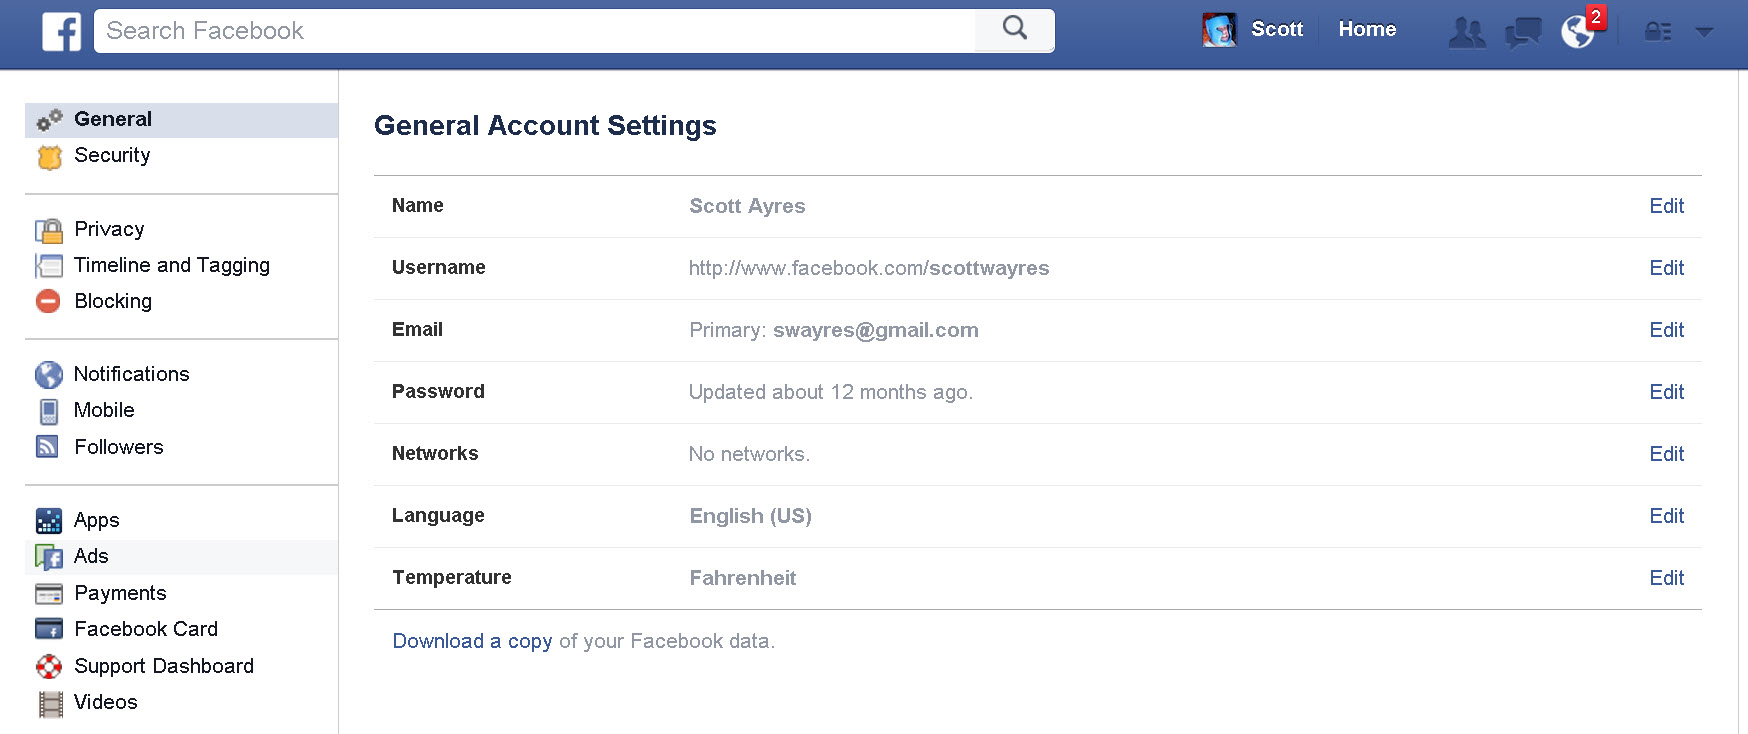 Warning: Here's How To Remove Facebook Apps (that Might Be Spying